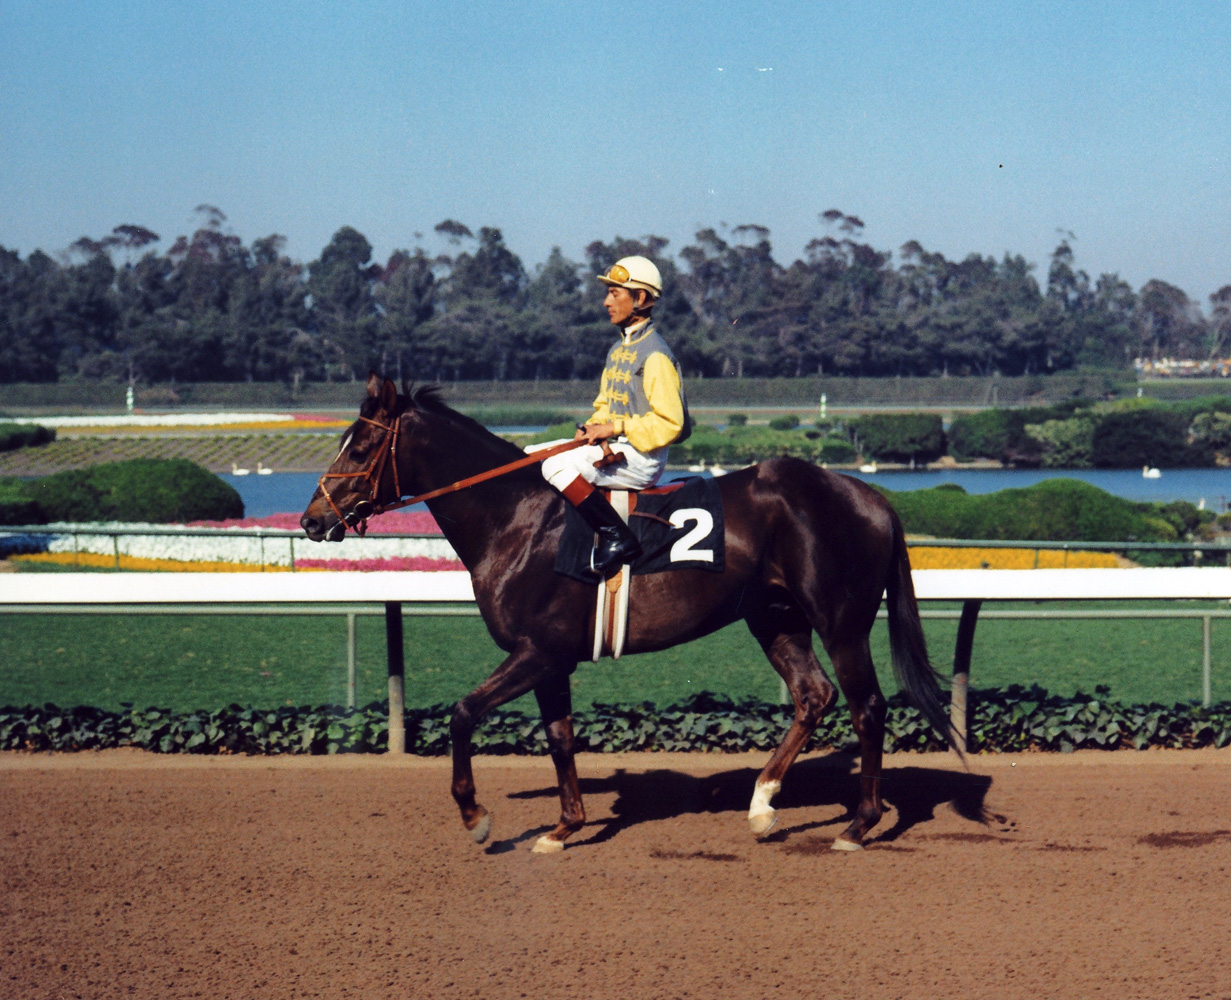 Braulio Baeza with Arts and Letters at Hollywood Park (Vic Stein & Assoc./Bill Mochon Photo Collection /Museum Collection)